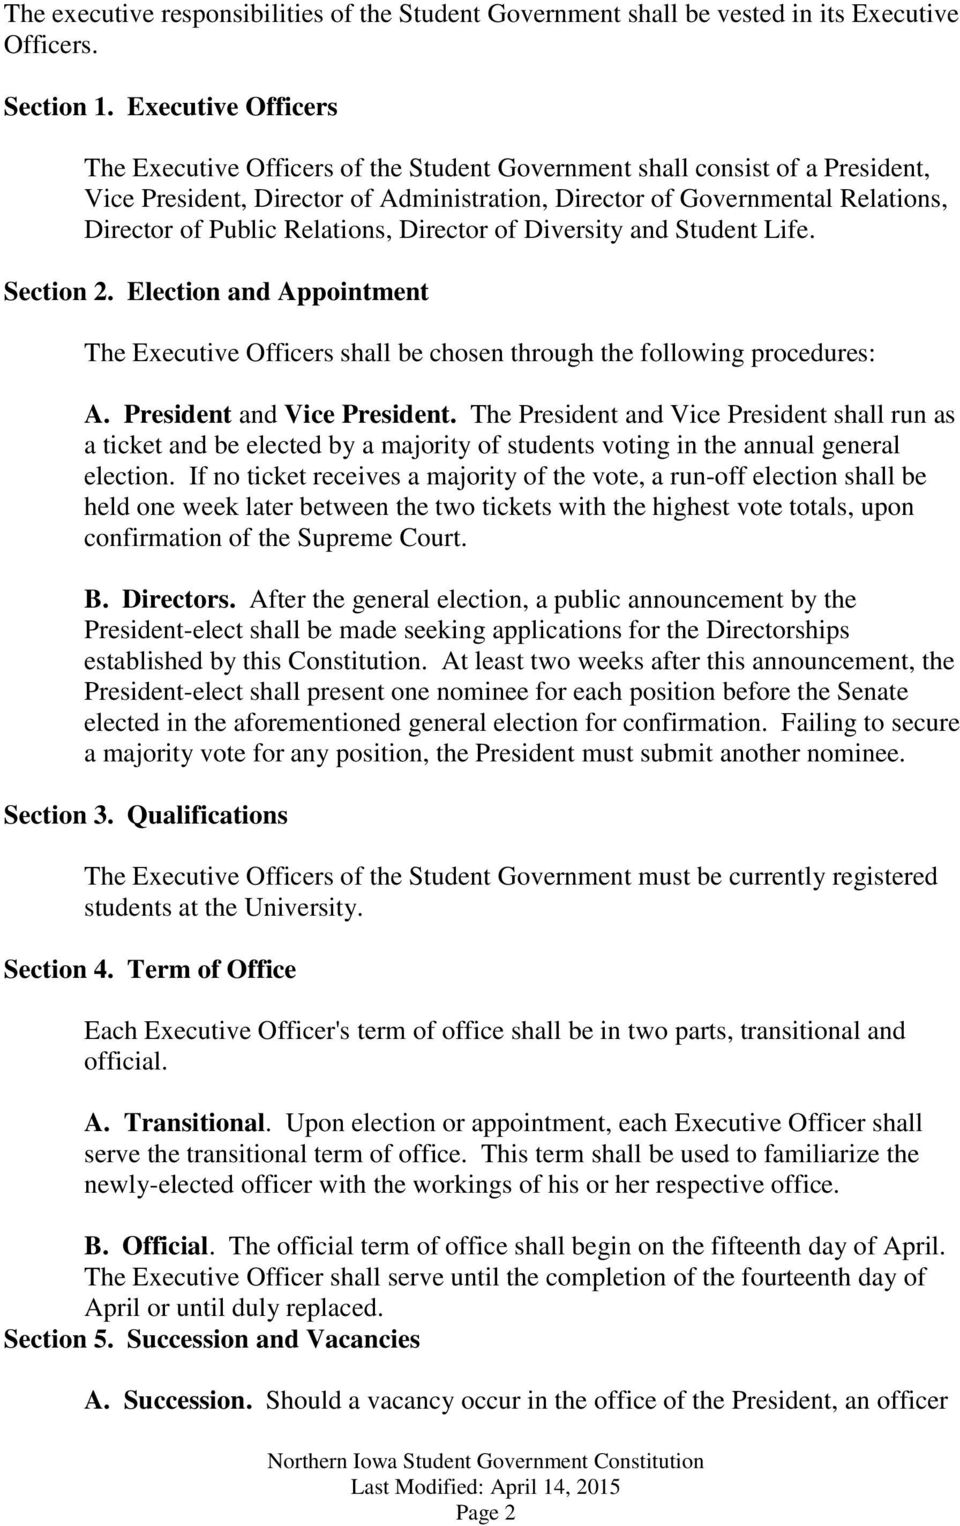 Relations, Director of Diversity and Student Life. Section 2. Election and Appointment The Executive Officers shall be chosen through the following procedures: A. President and Vice President.